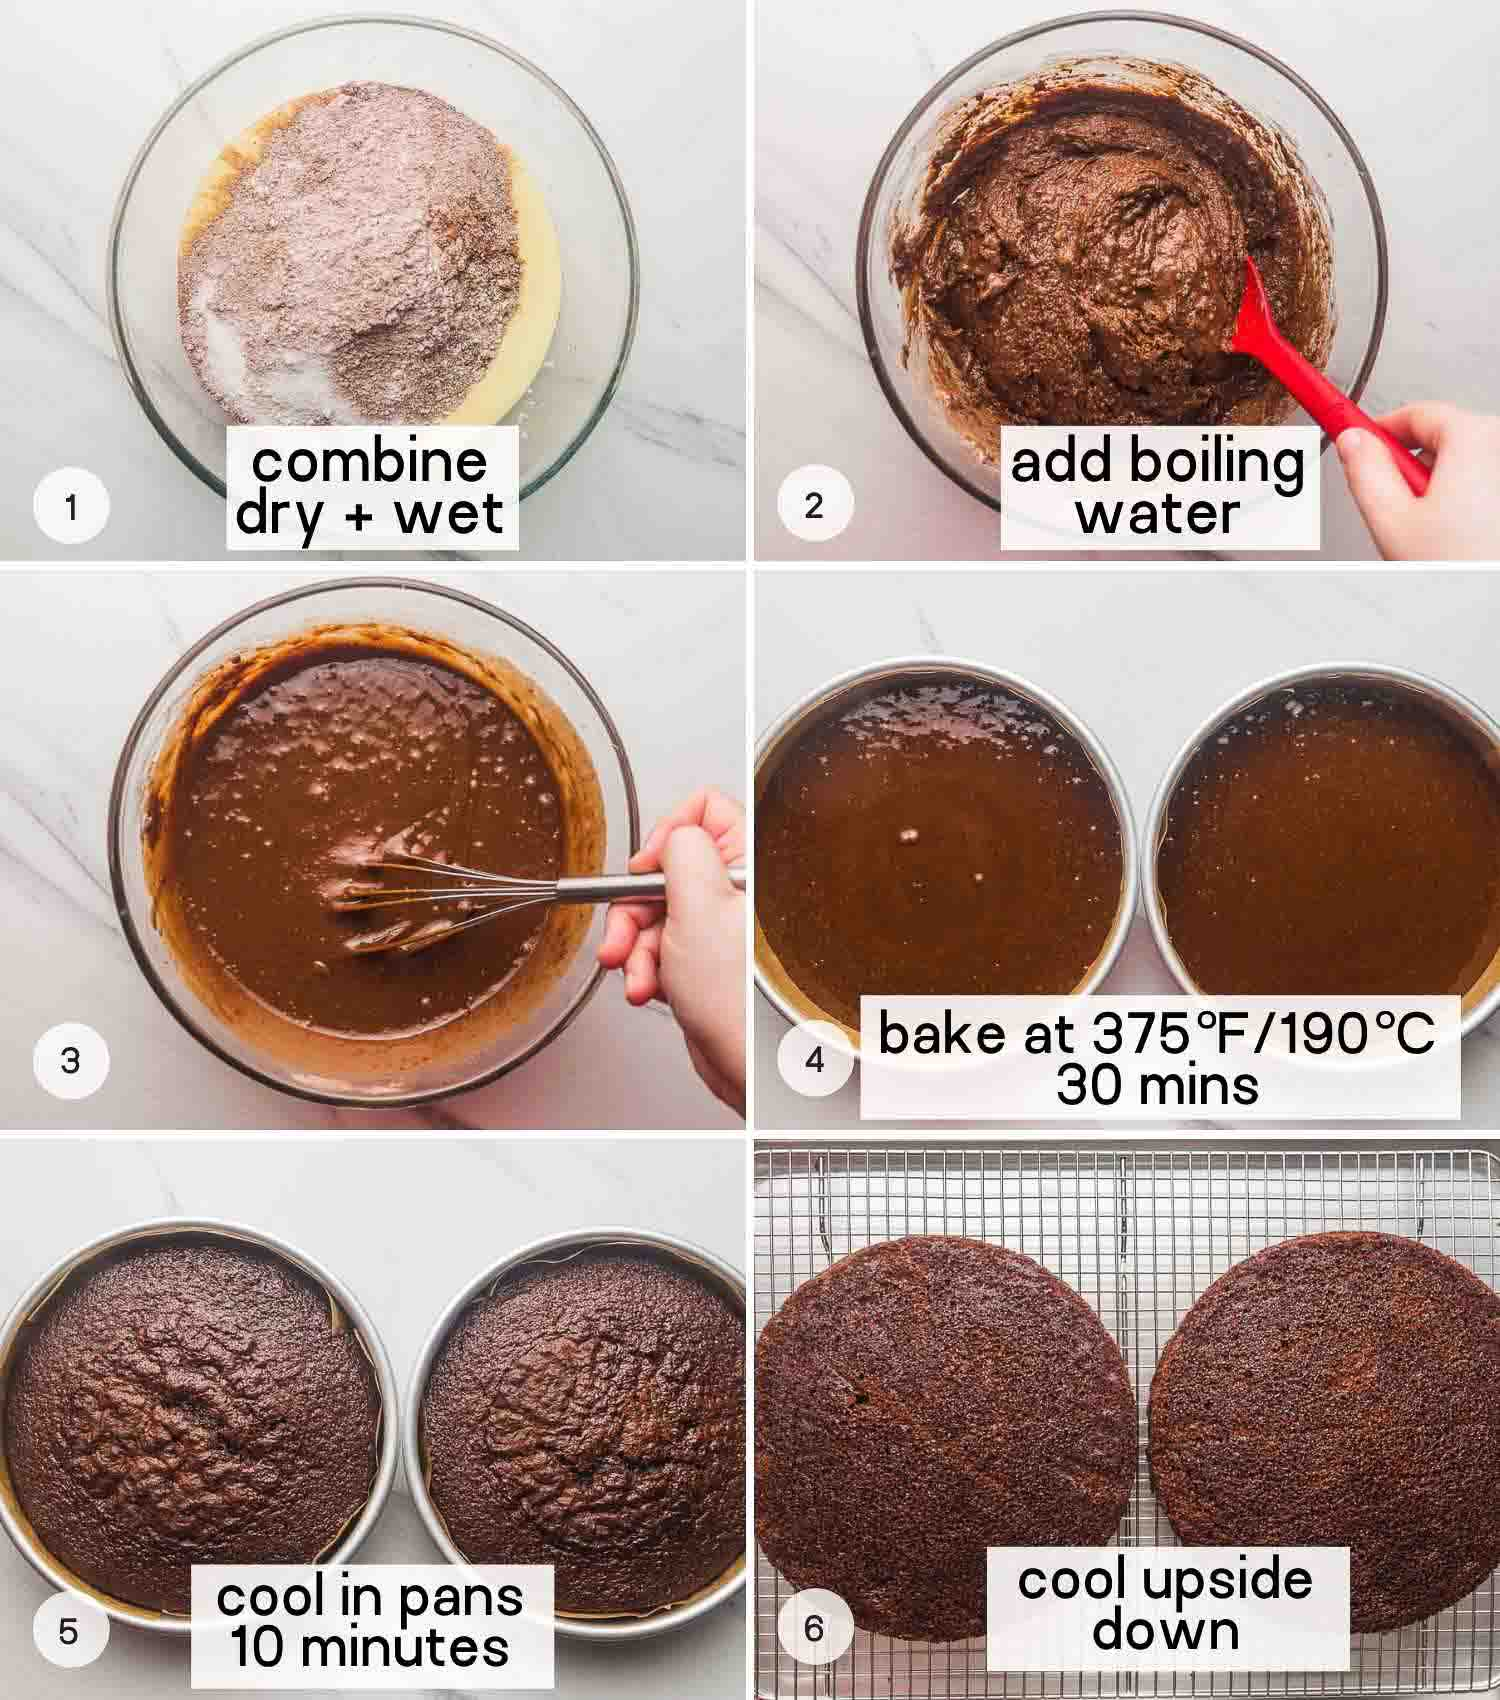 How to bake a chocolate cake, a collage with 6 images.